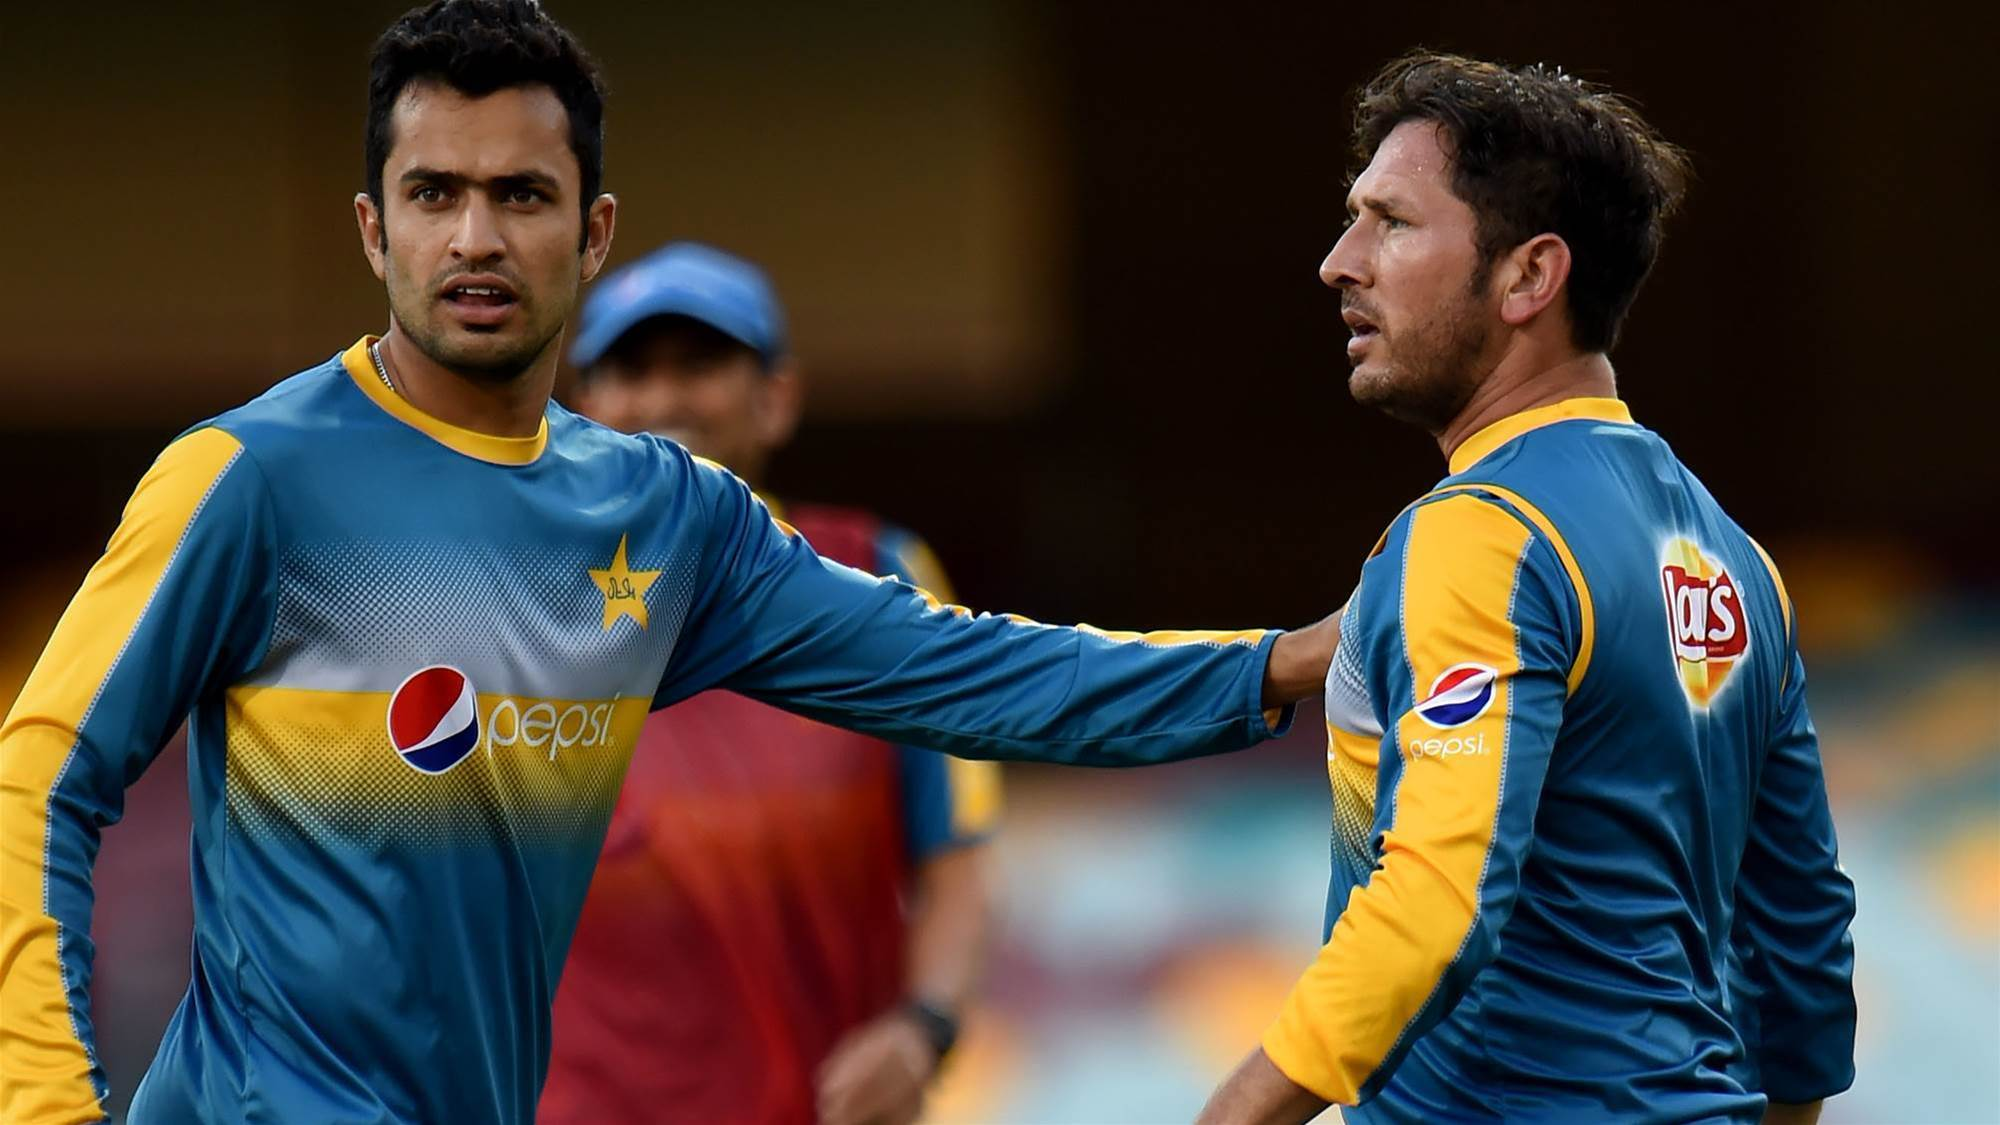 Pakistan players involved in training bust-up